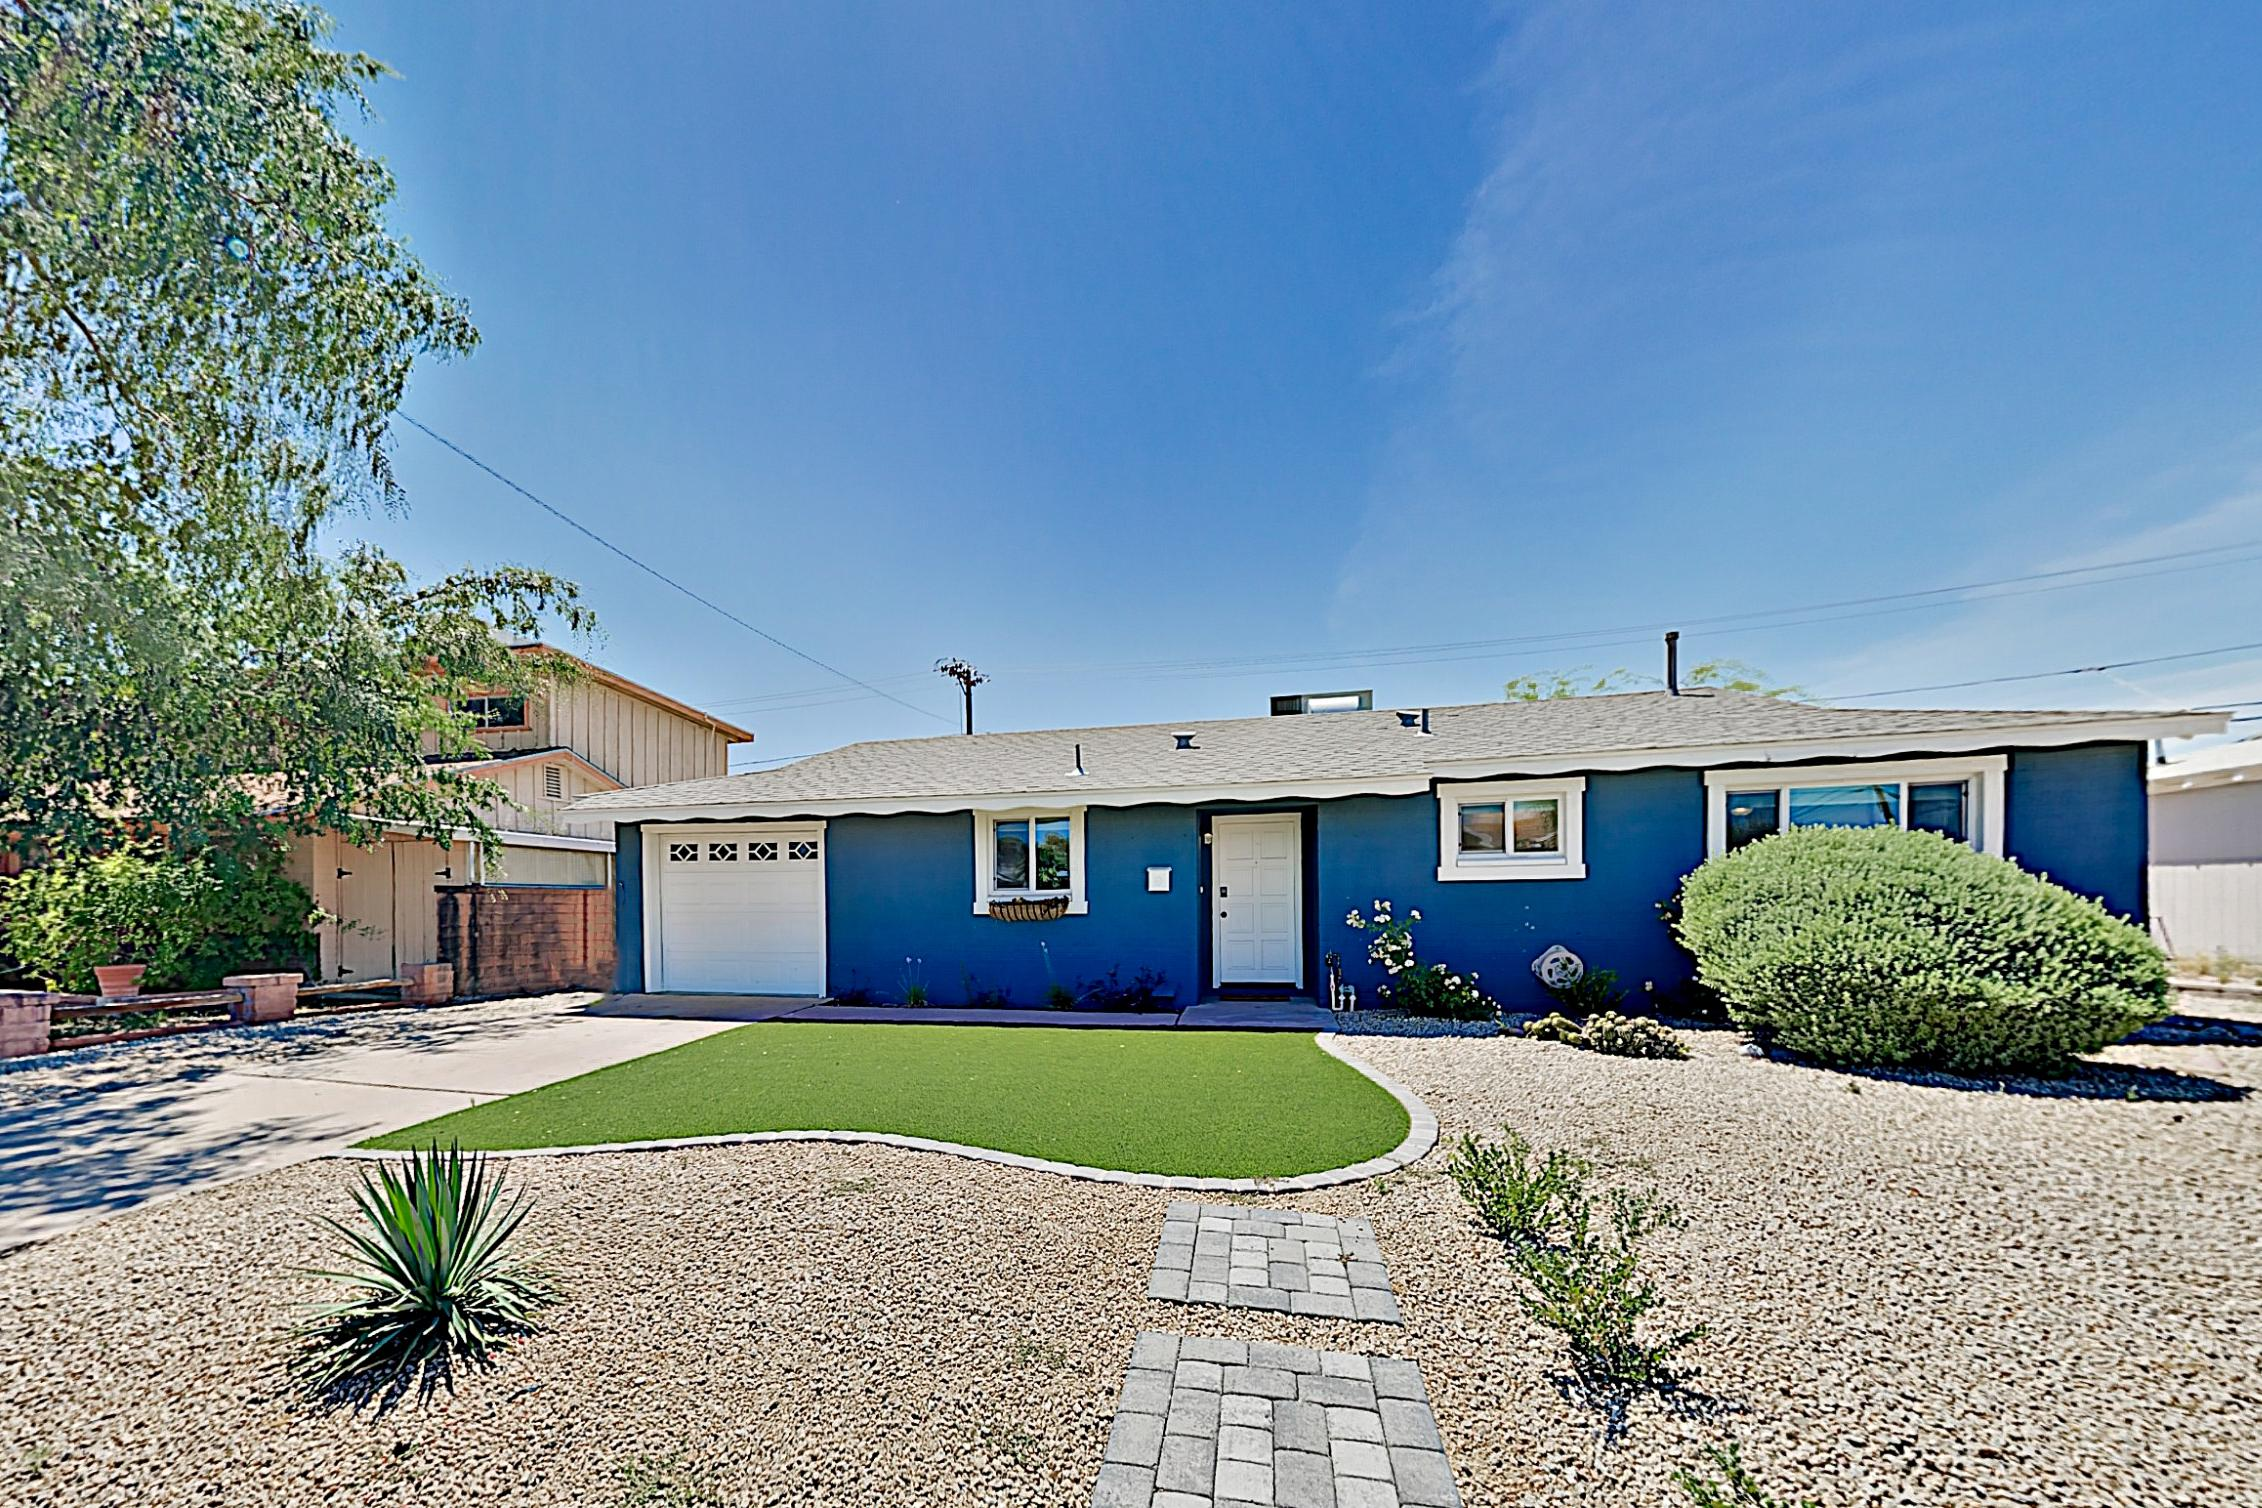 Property Image 1 - The Blue Bungalow in Old Town